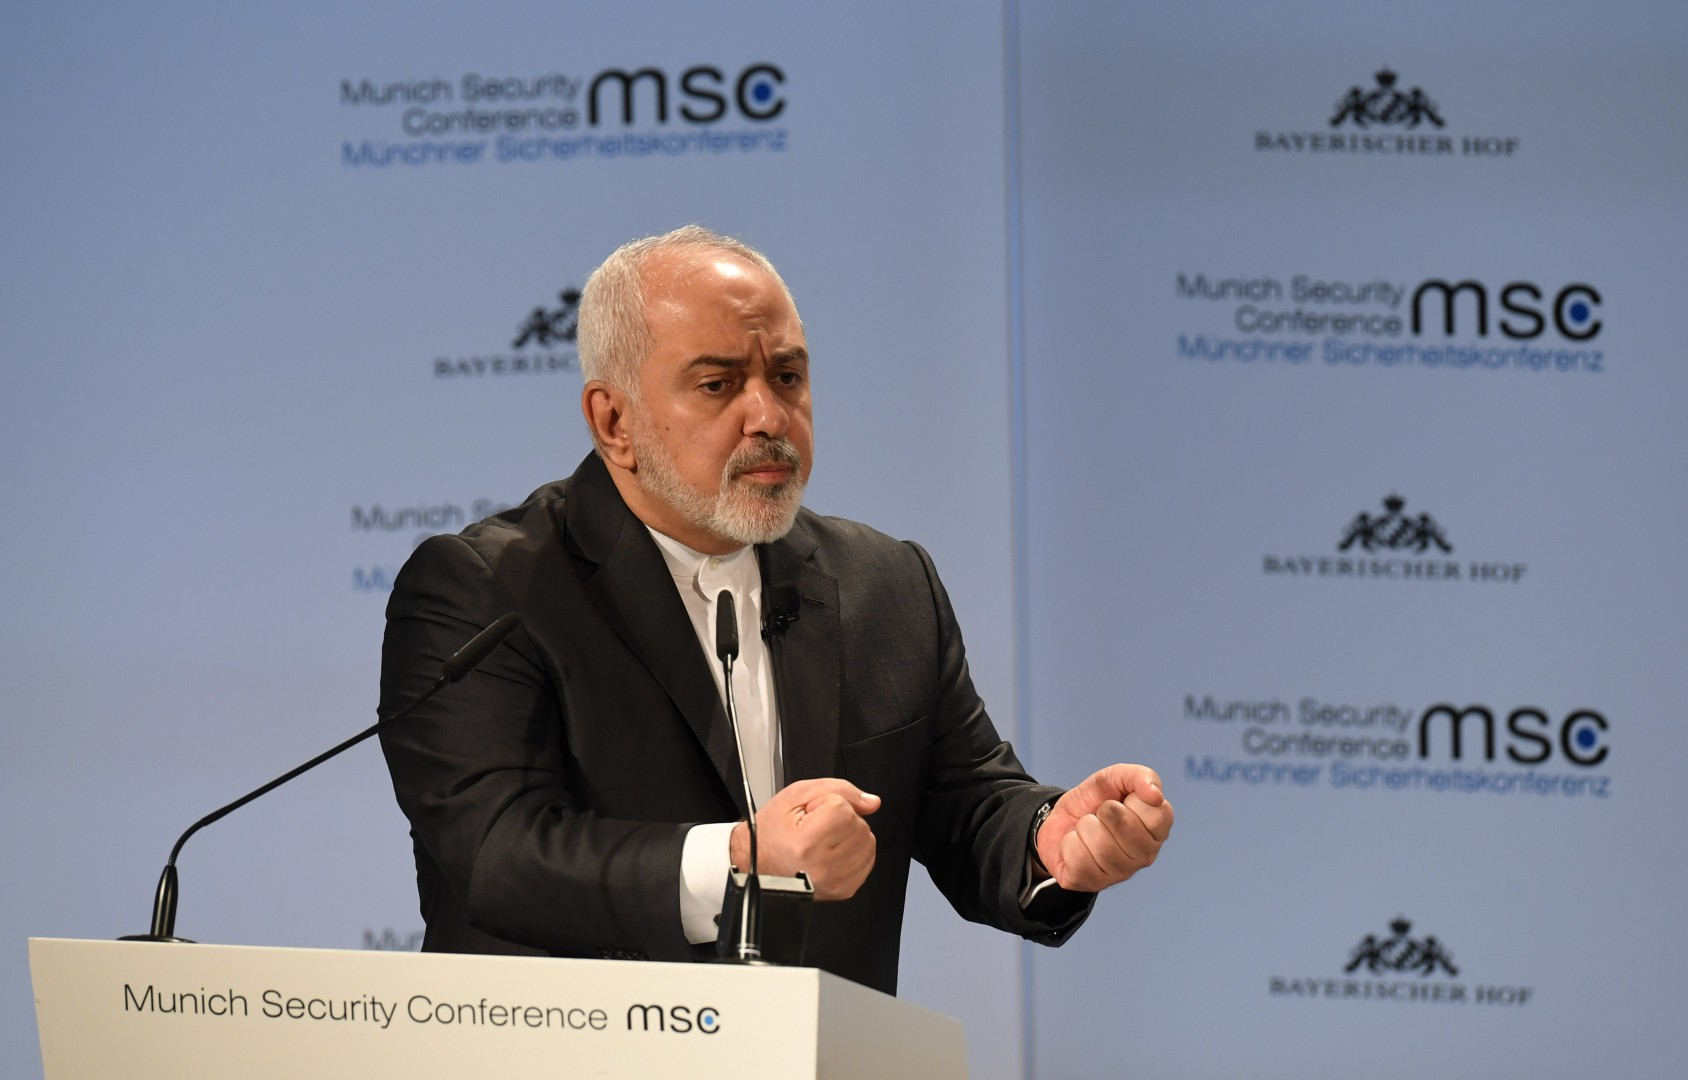 Iran's Foreign Minister Mohammad Javad Zarif delivers a speech during the 55th Munich Security Conference in Munich, southern Germany, on February 17, 2019. (Photo by Christof STACHE / AFP)